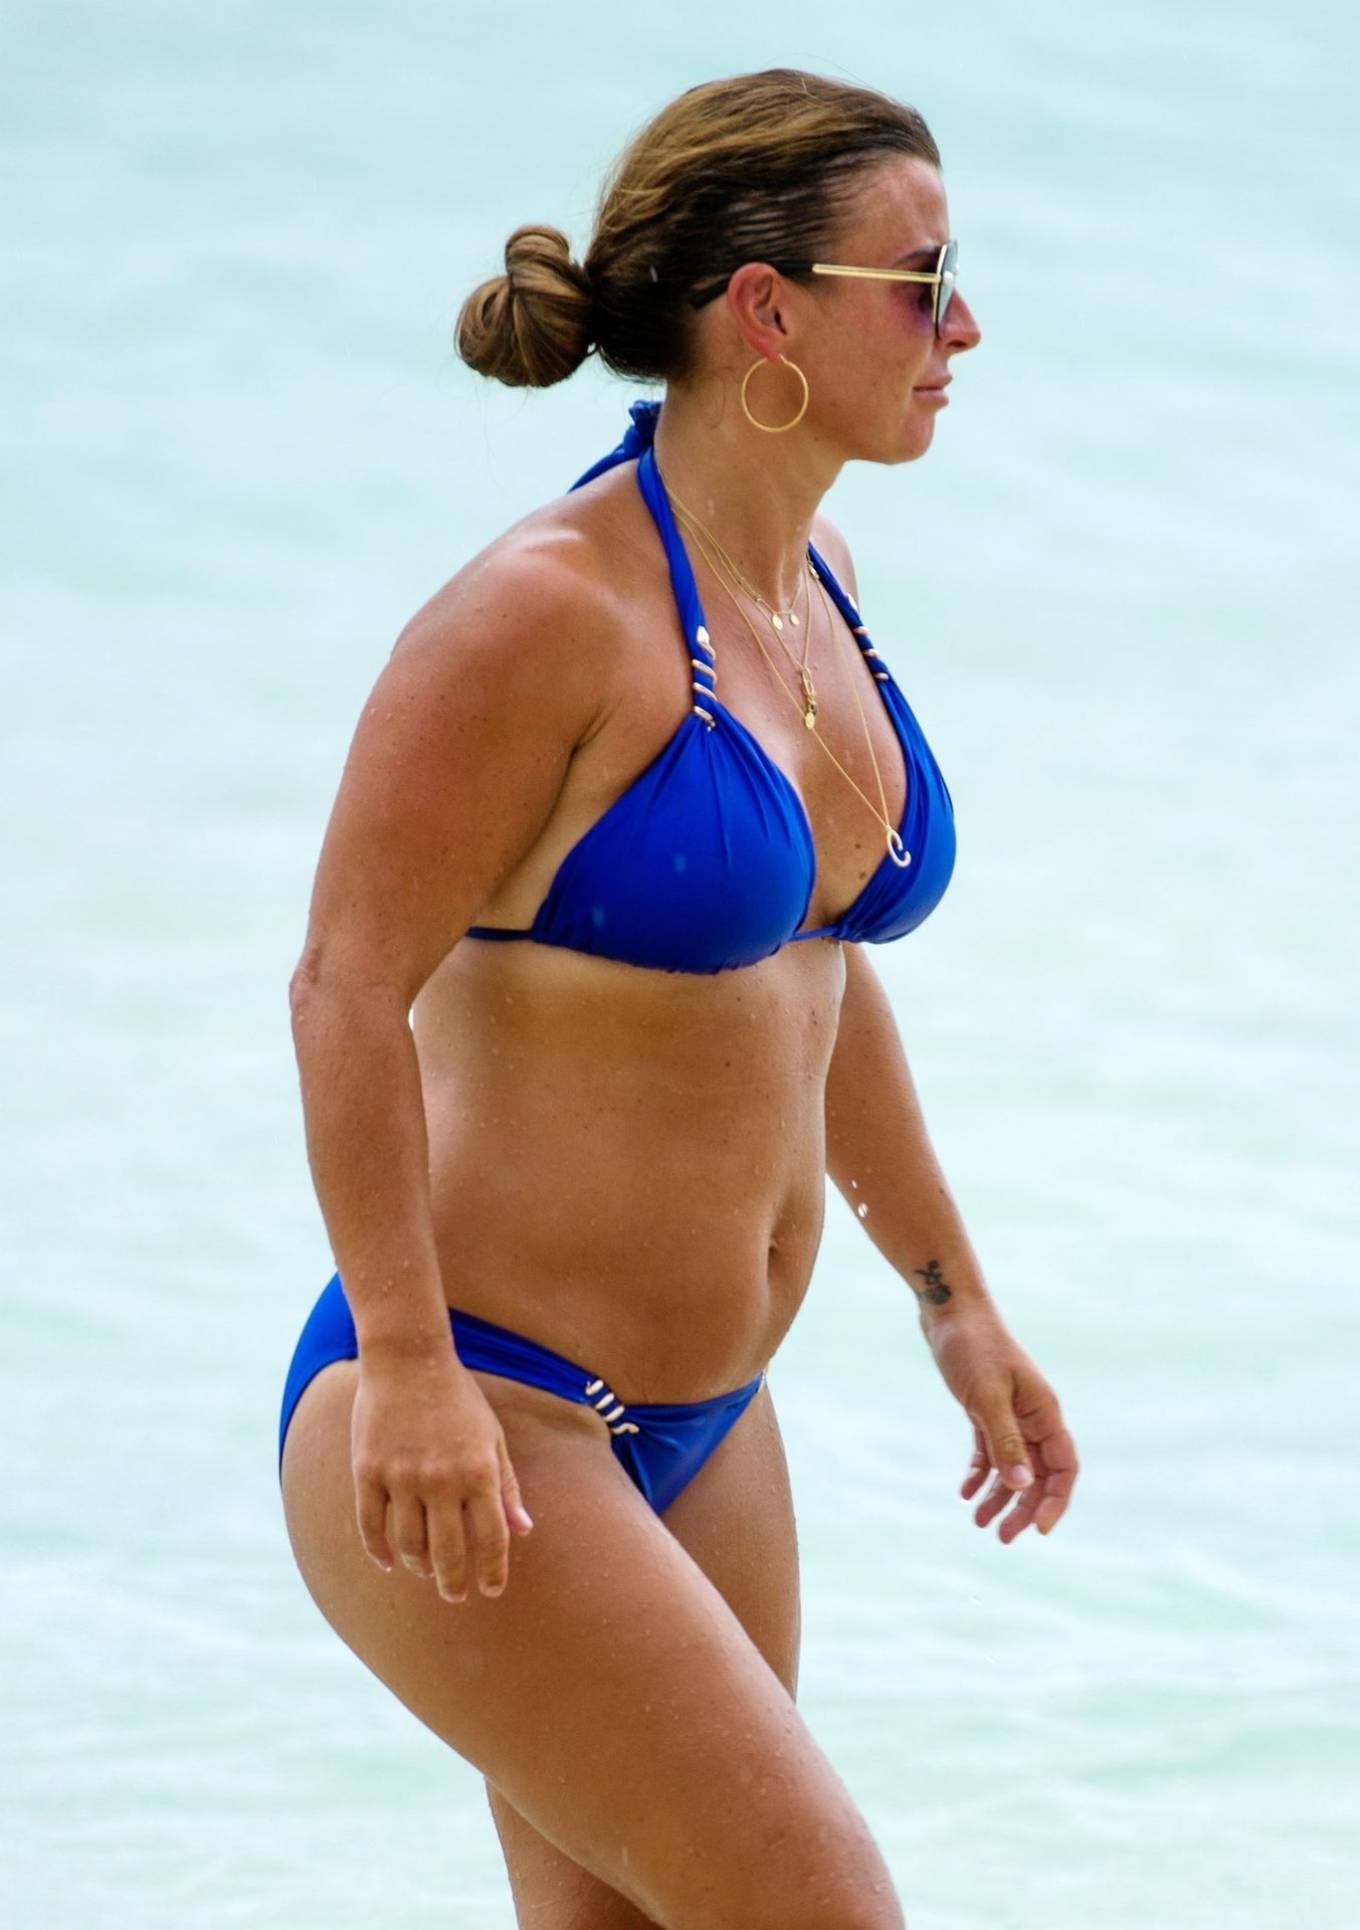 Coleen Rooney - In a royal blue bikini on the beach in Barbados